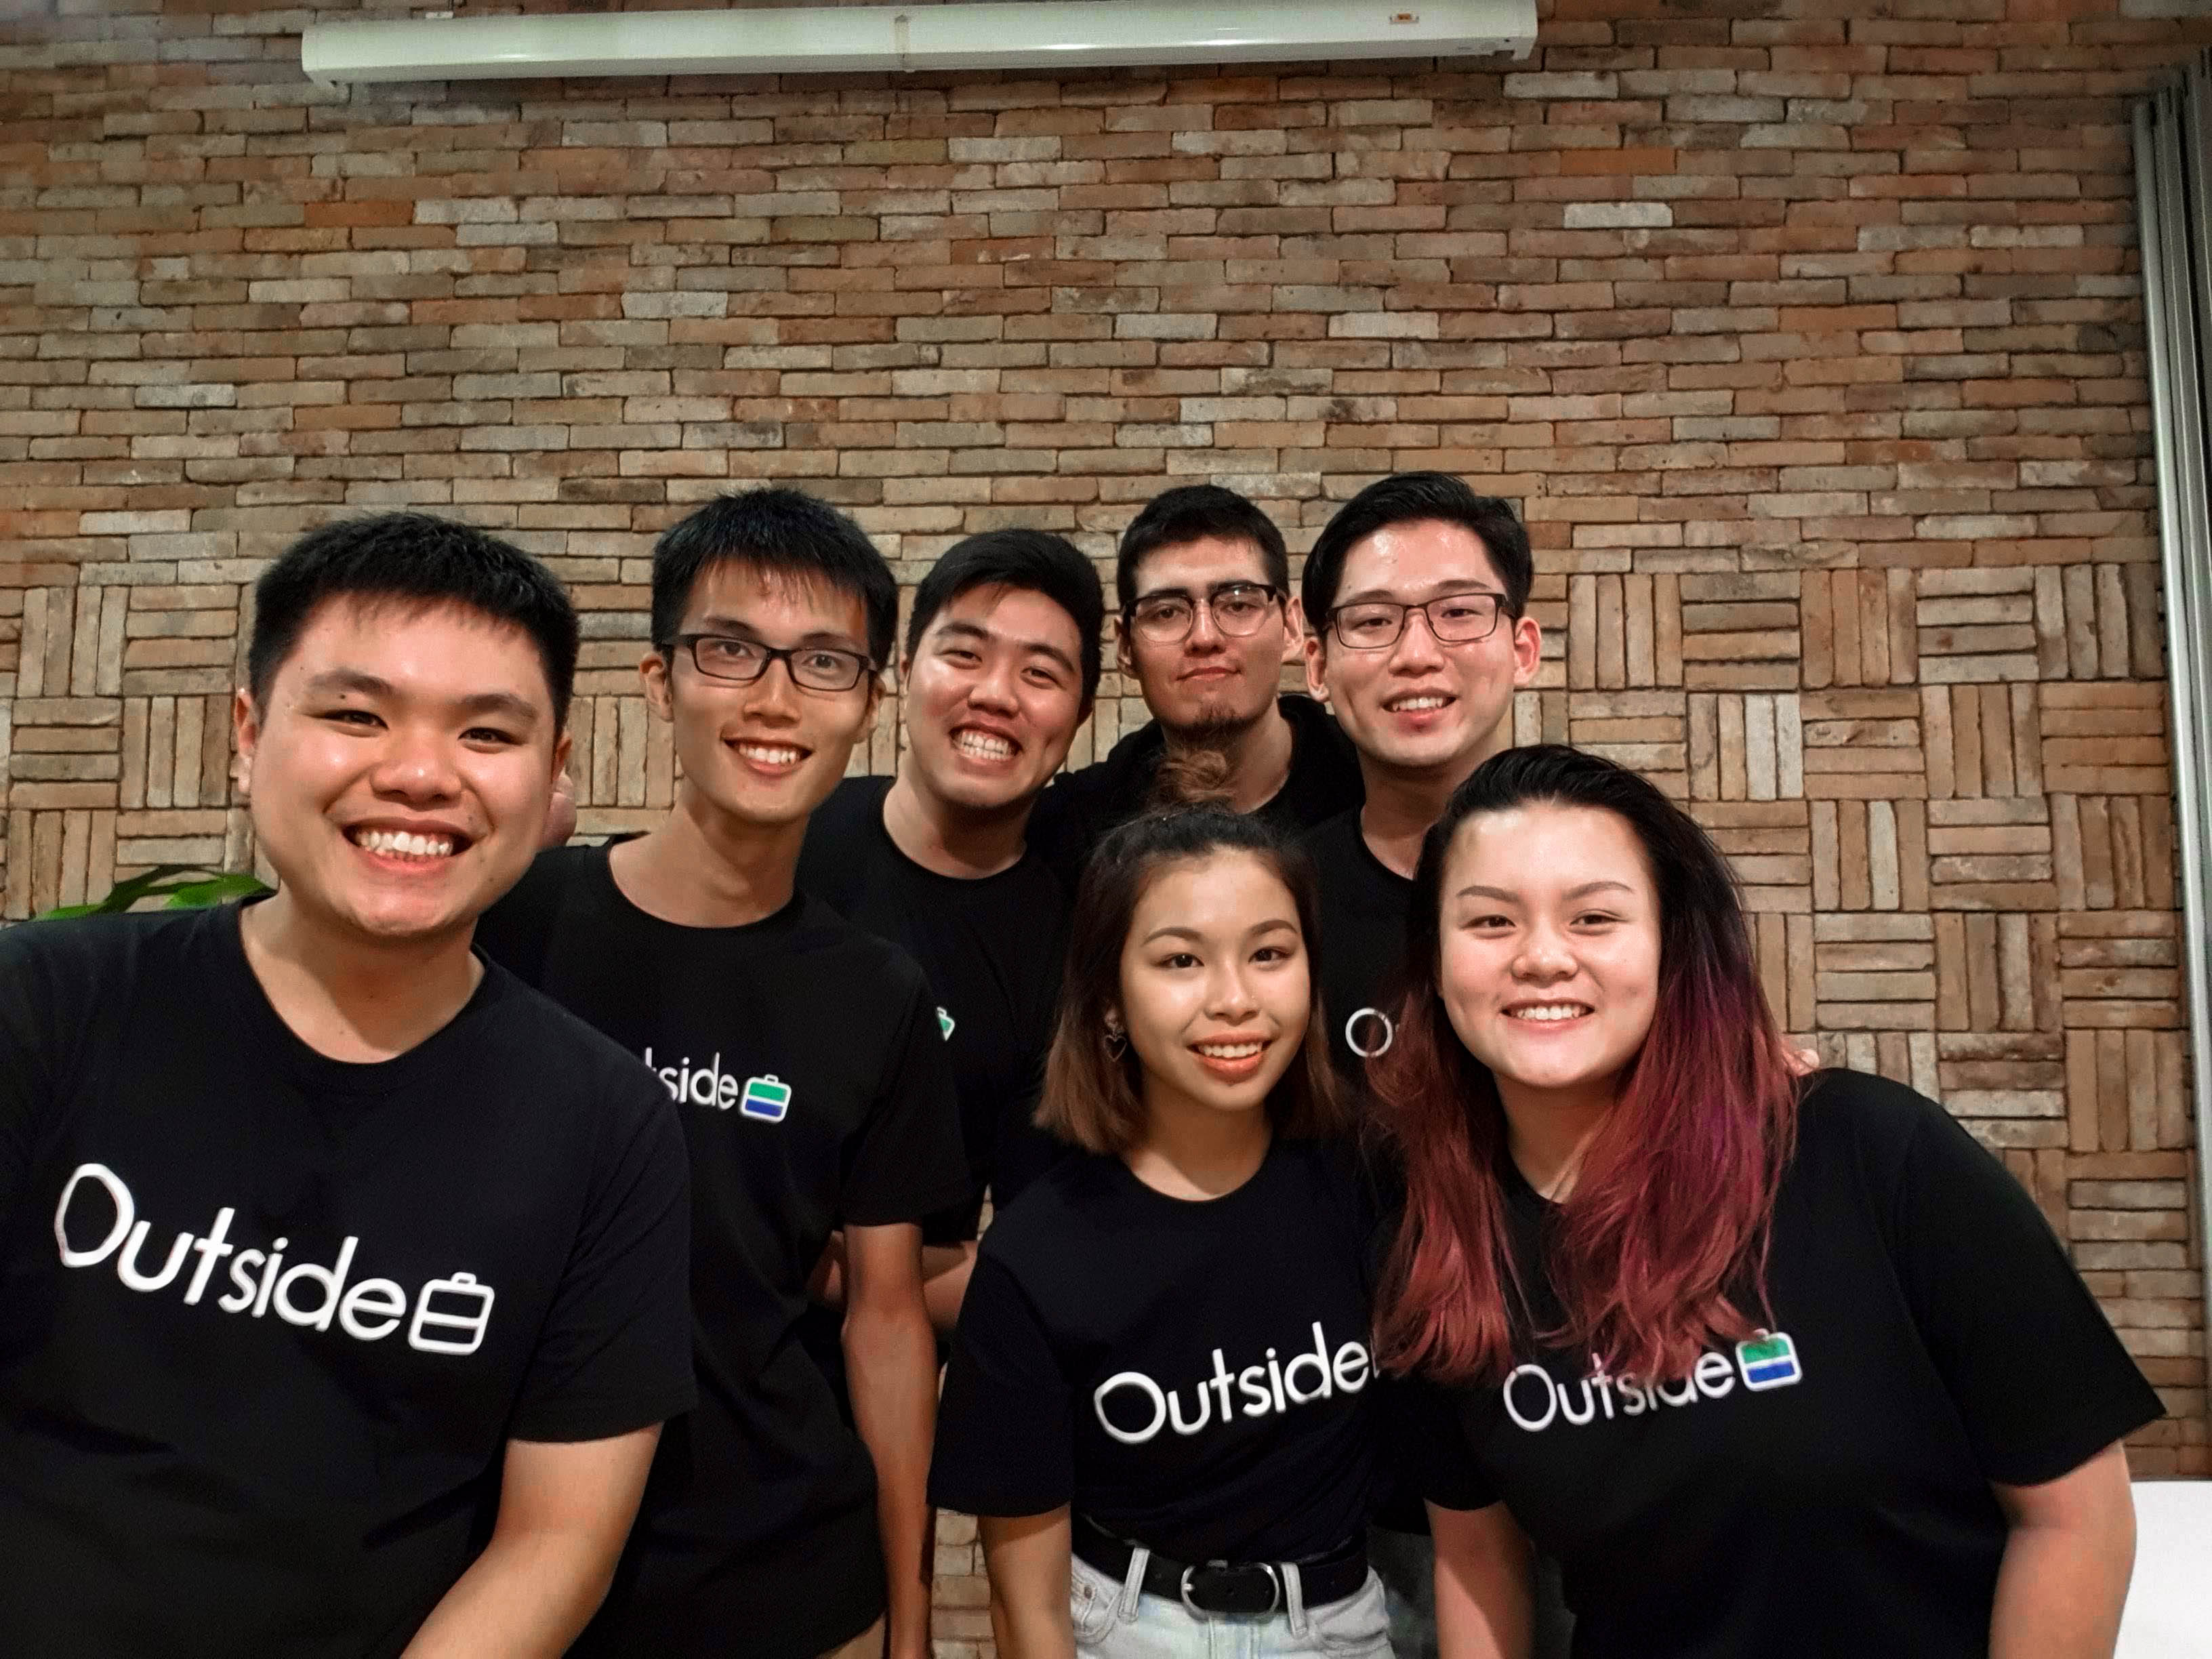 About Outside, Outside App team group photo